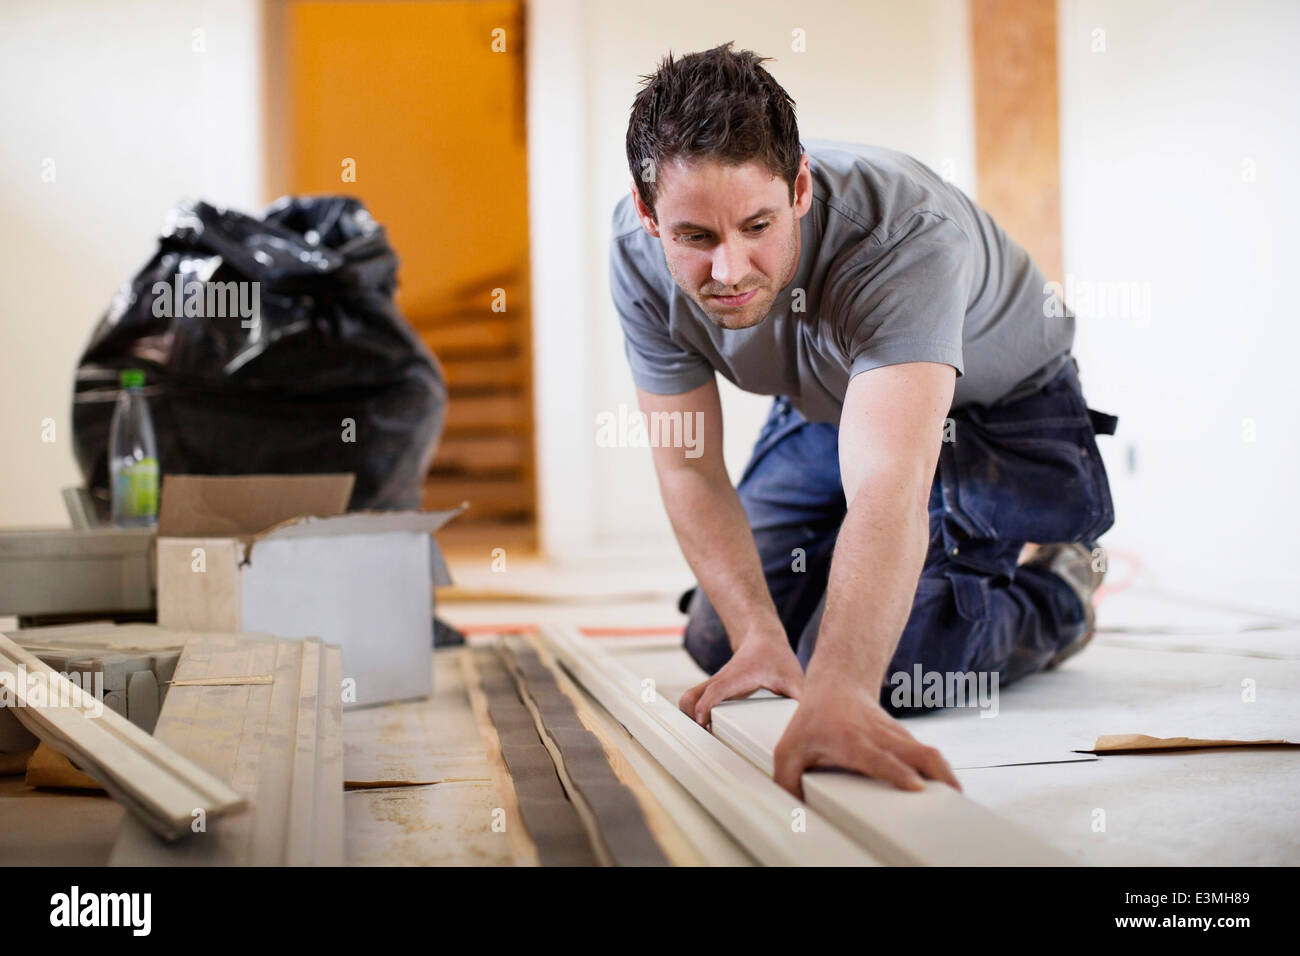 Male carpenter examining wooden plank at site Stock Photo